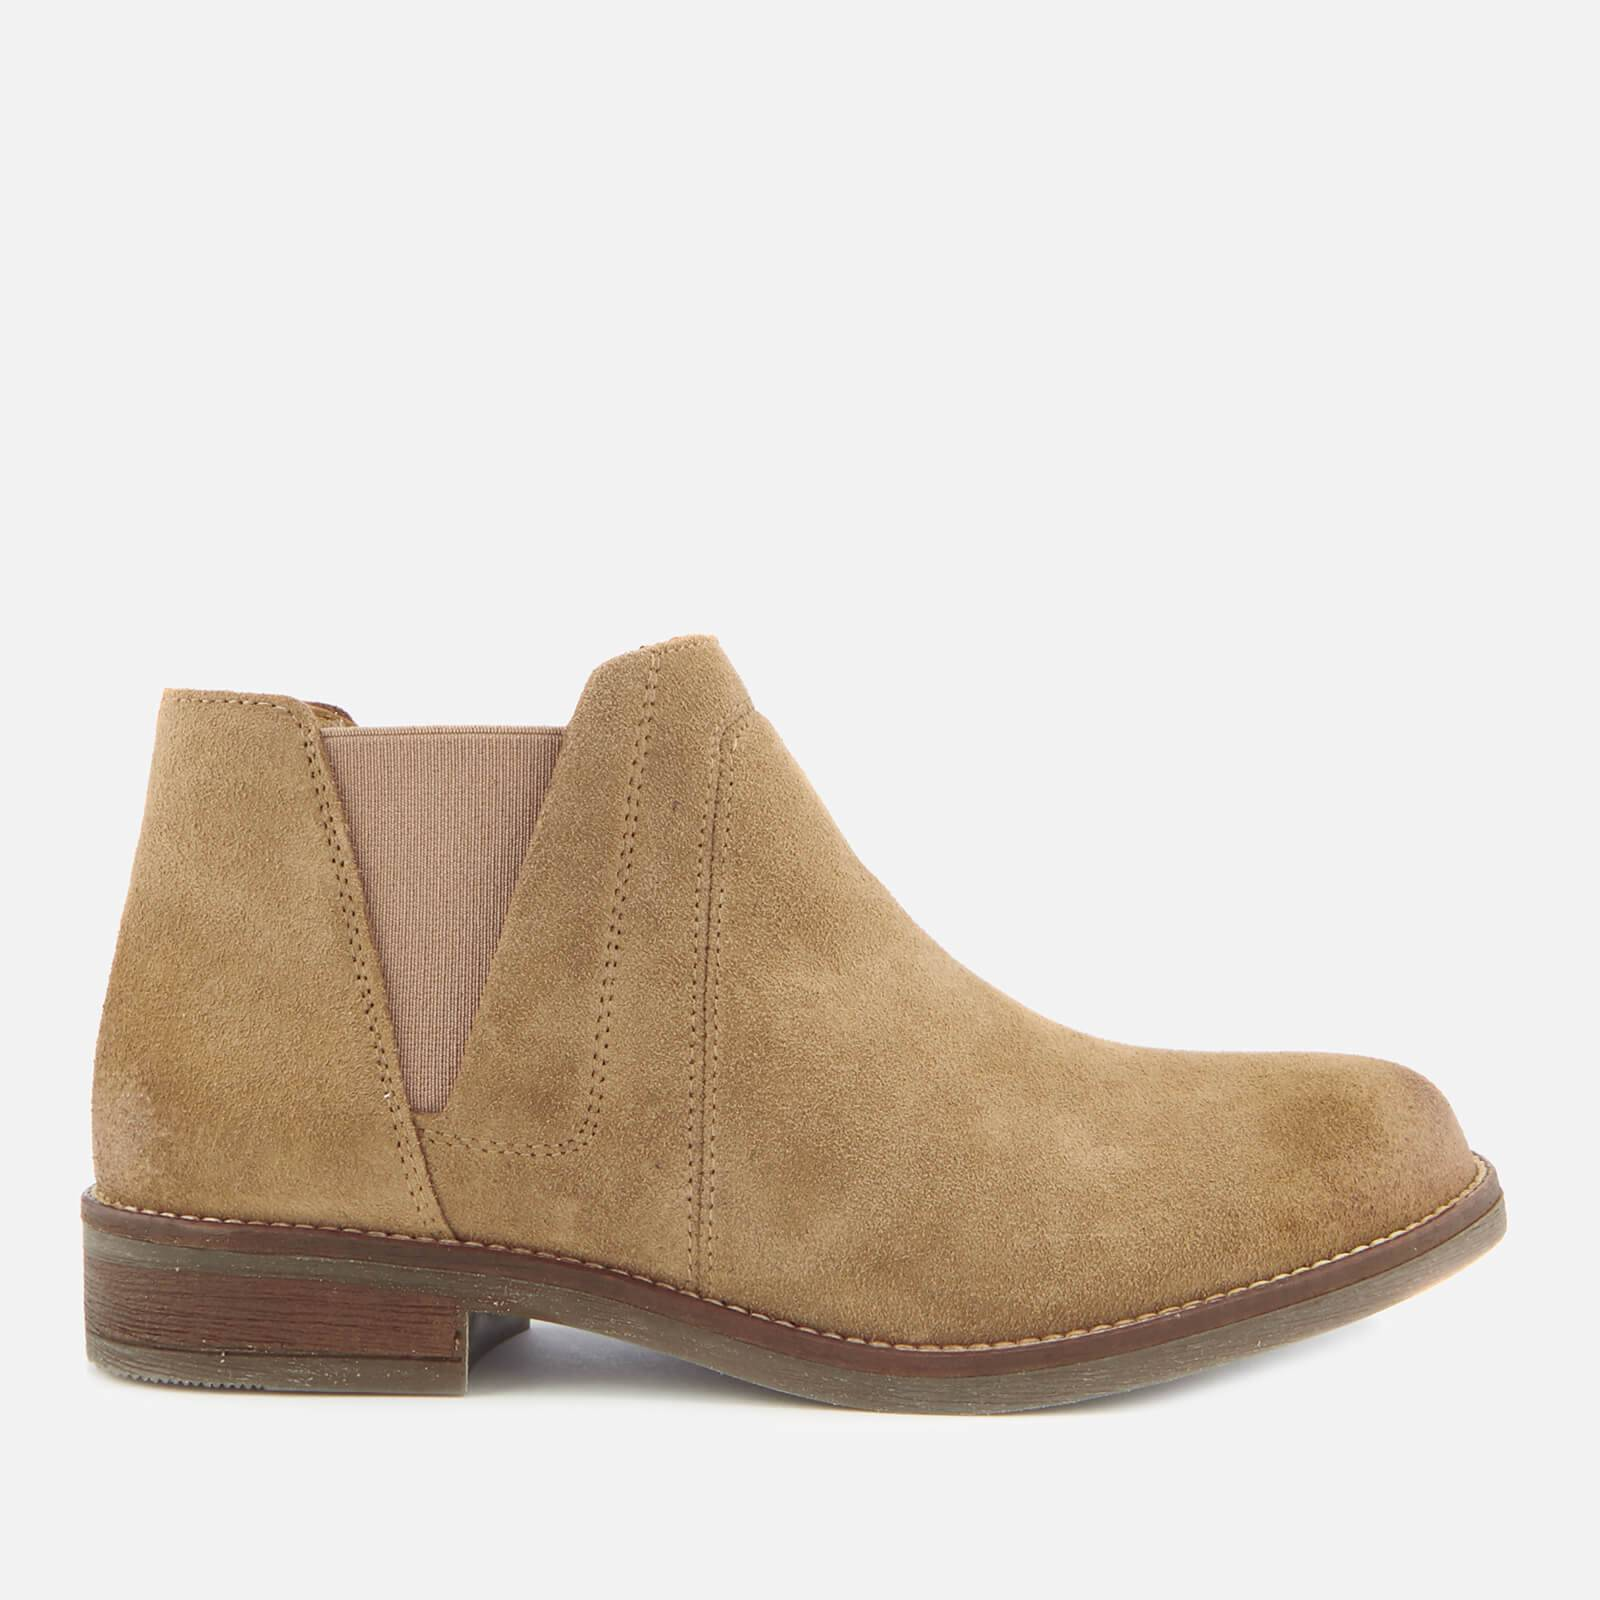 Clarks Women's Demi Beat Suede Ankle Boots - Sand - UK 6 - Beige